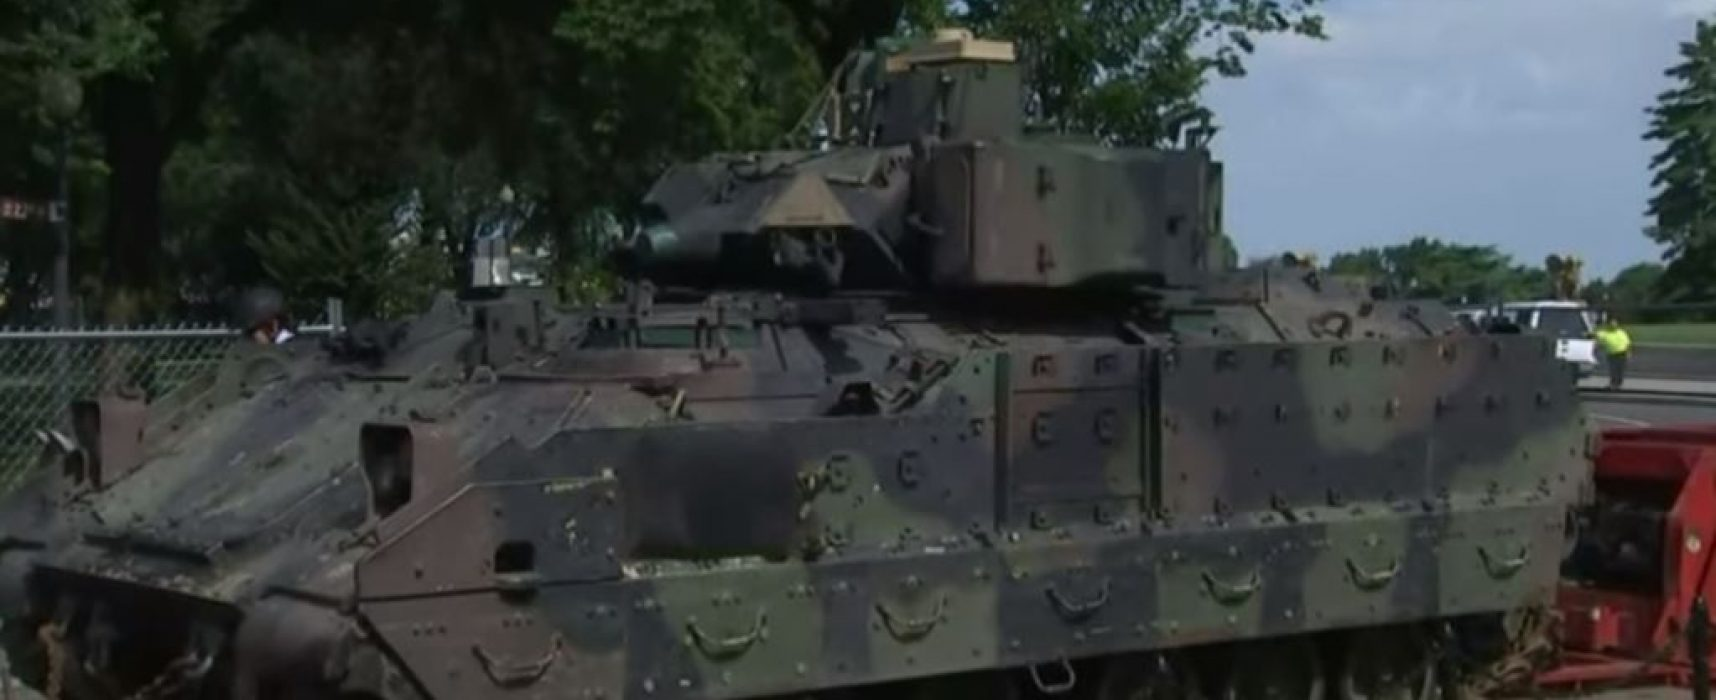 Russian media reported 'rusty' tanks displayed in Washington, DC on July 4